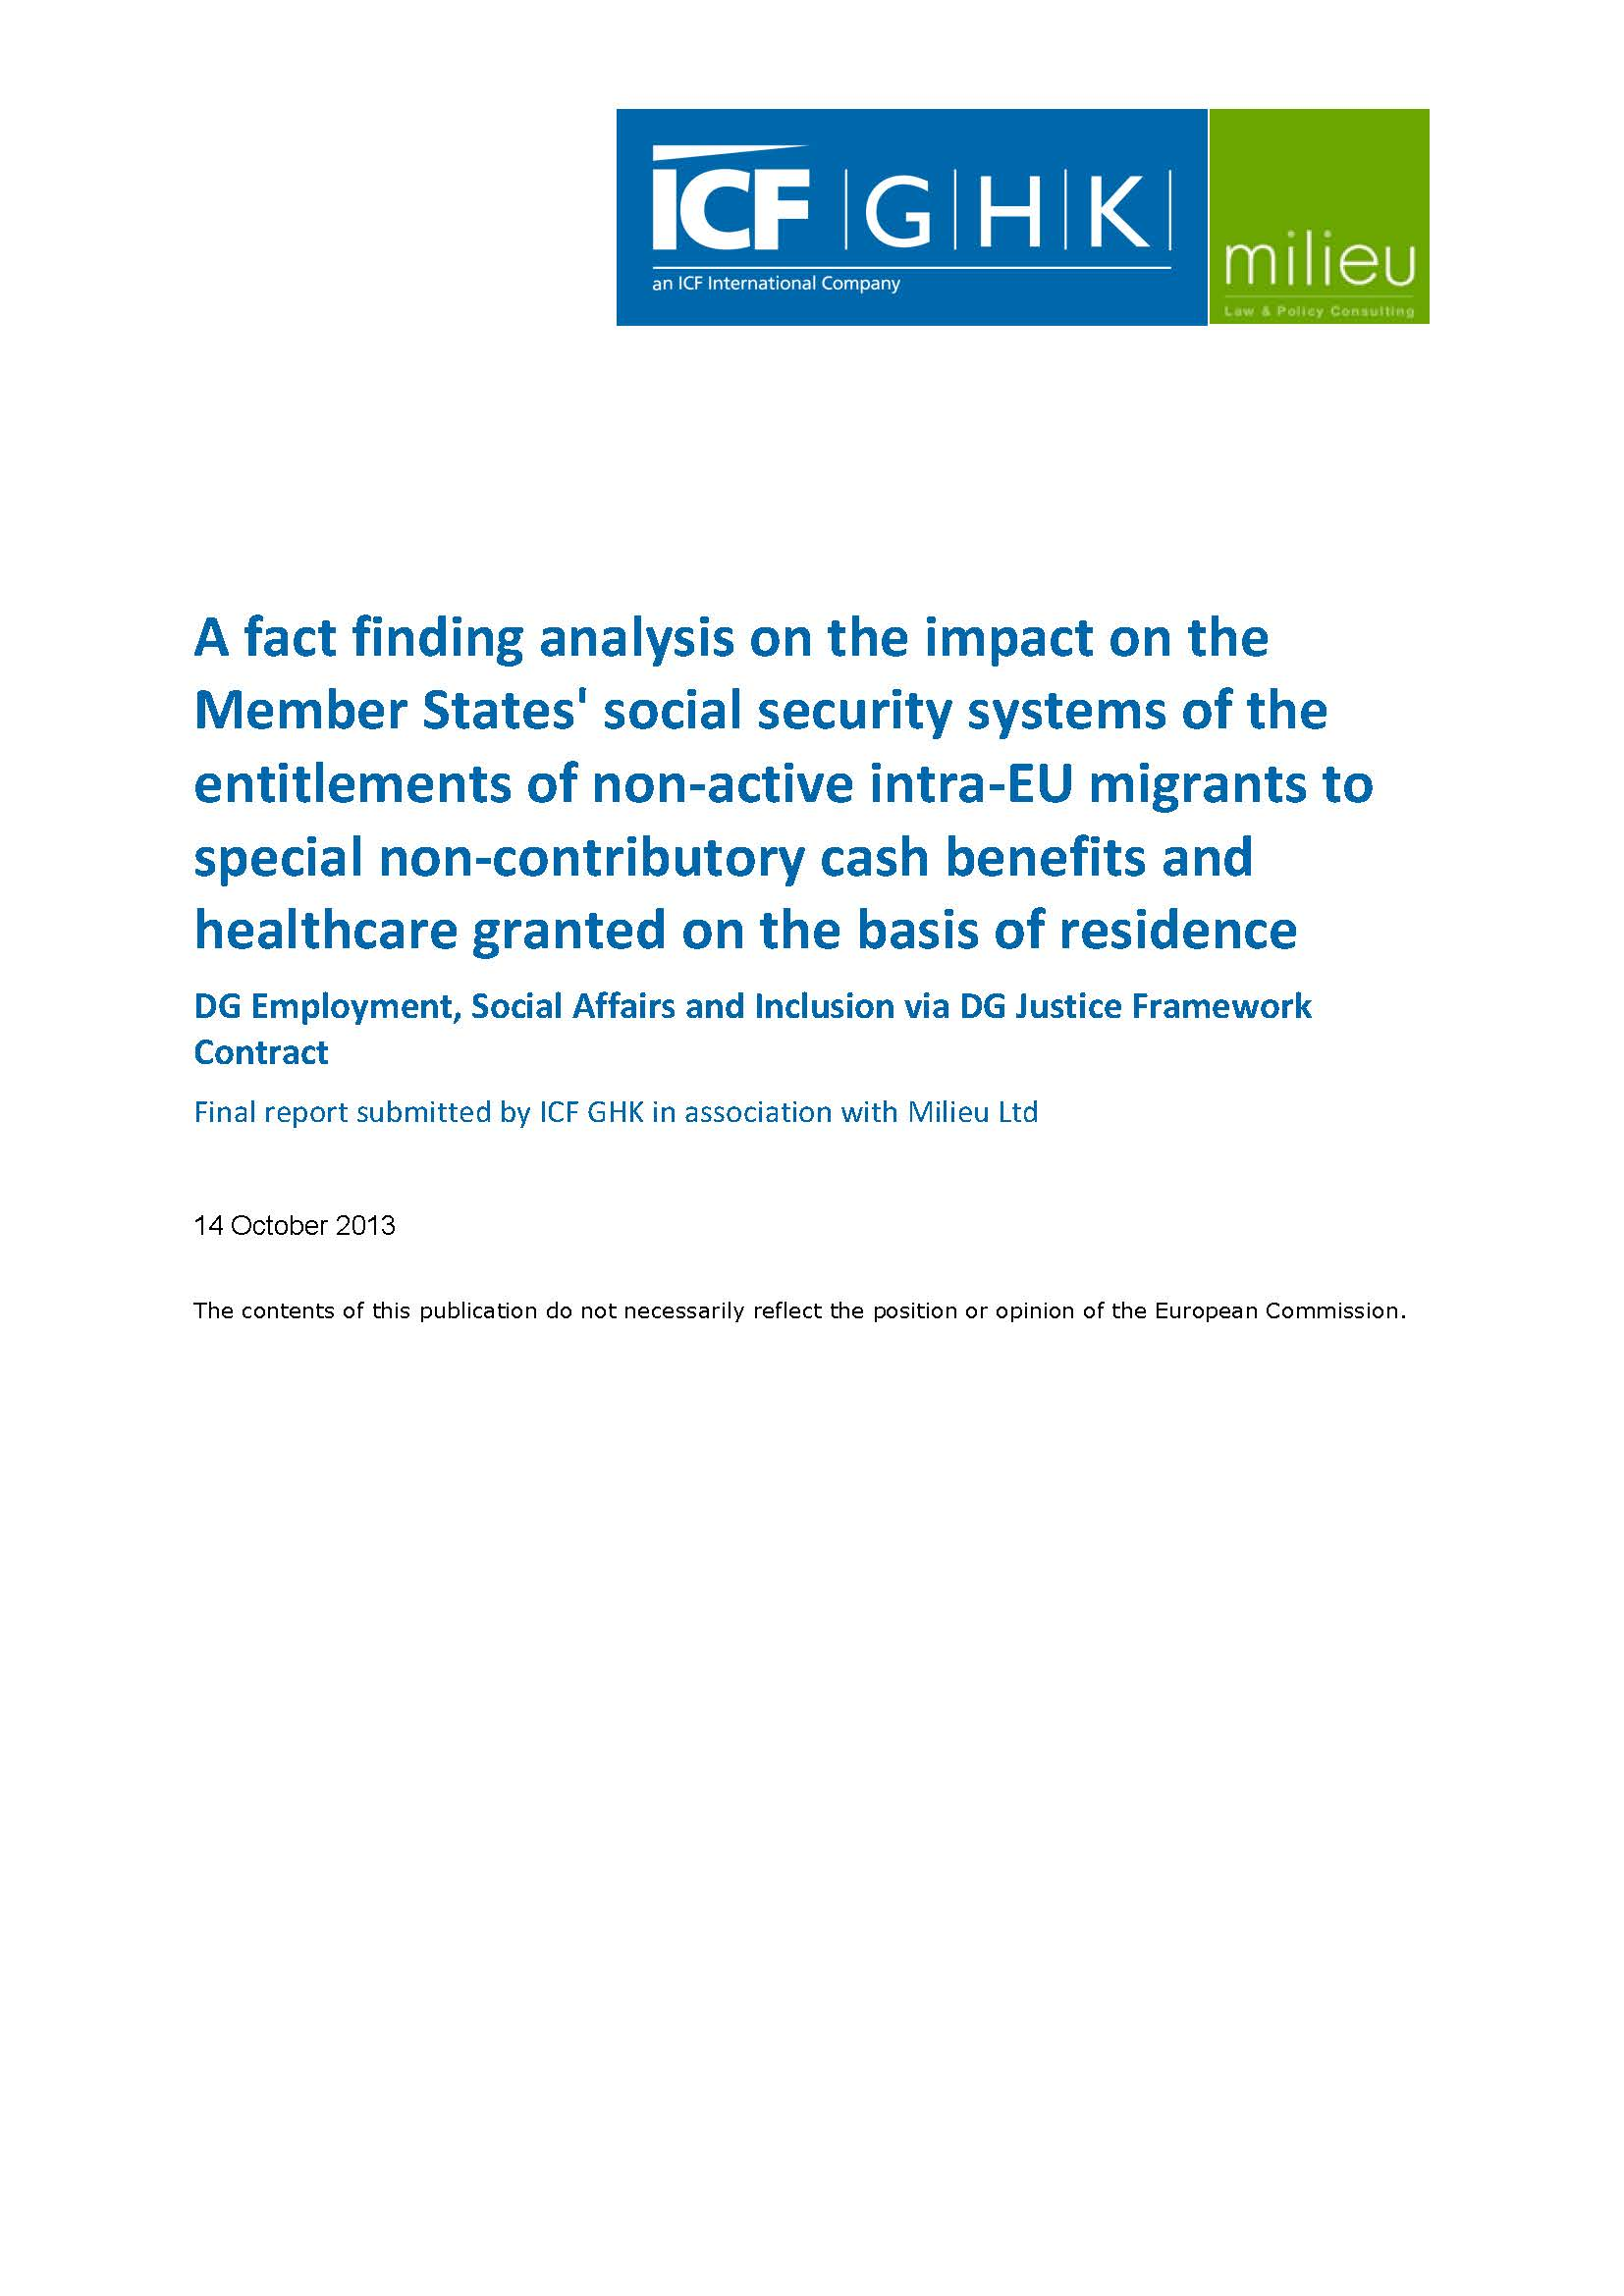 A fact finding analysis on the impact on the Member States